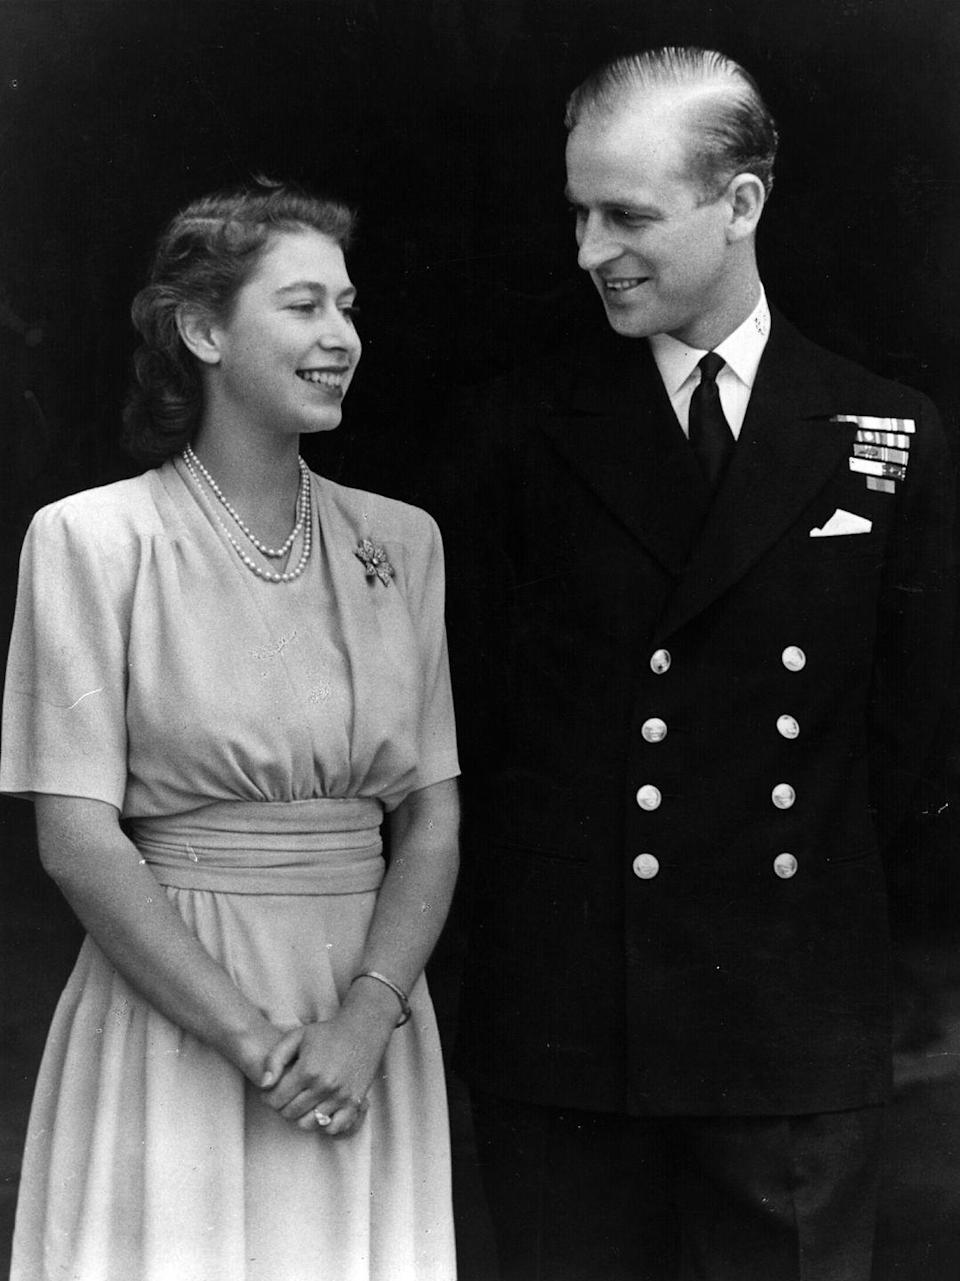 <p>Princess Elizabeth and Philip Mountbatten on the occasion of their engagement at Buckingham Palace in London, 1947.</p>